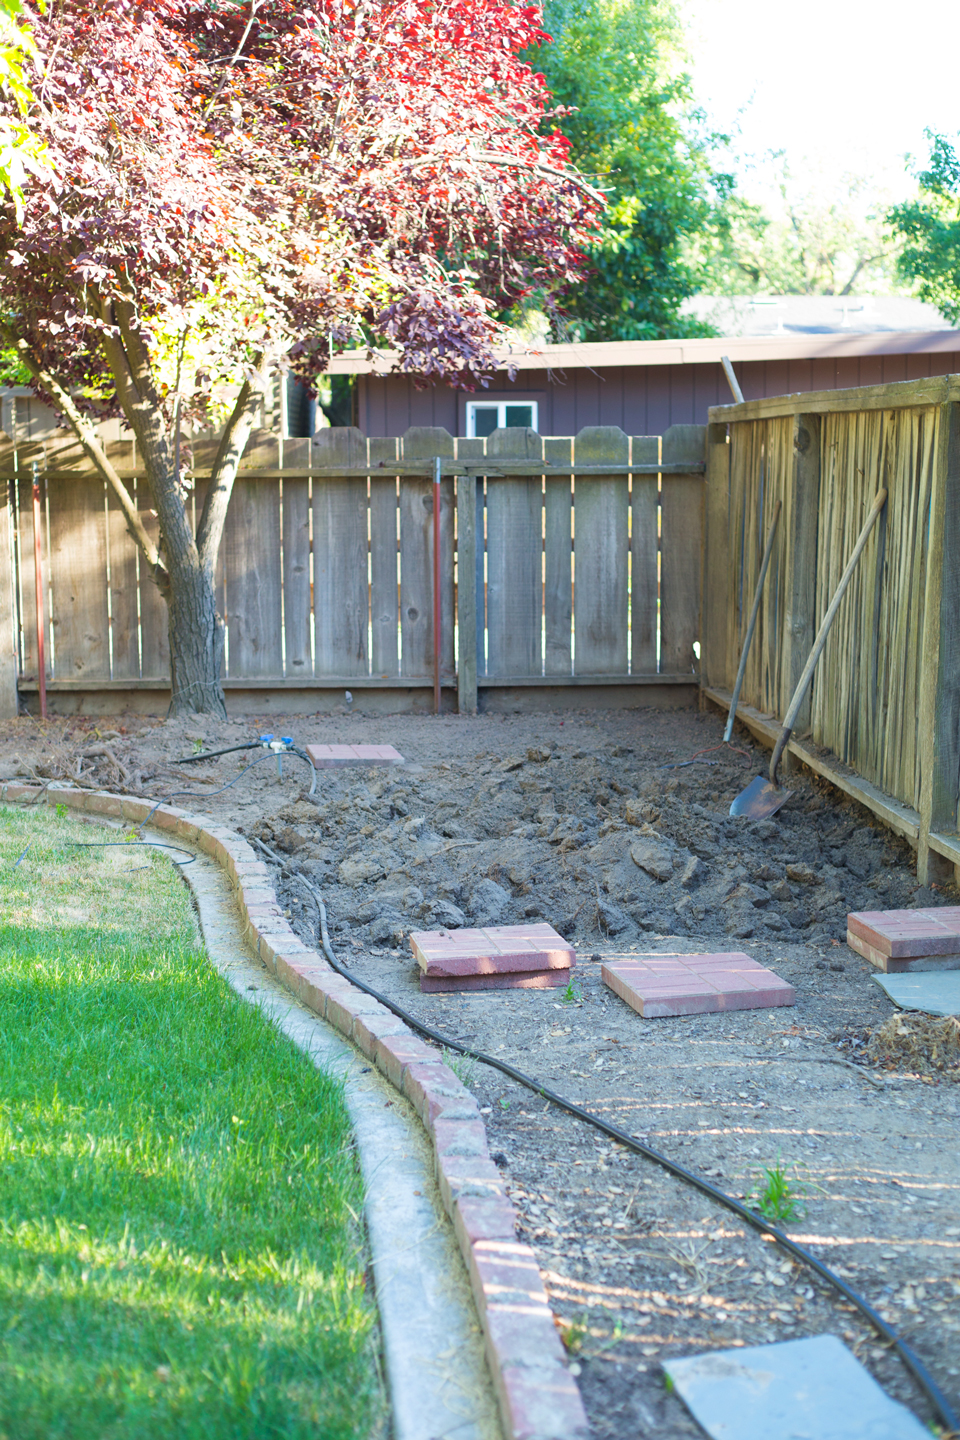 A before image of a backyard with grass and dirt patch